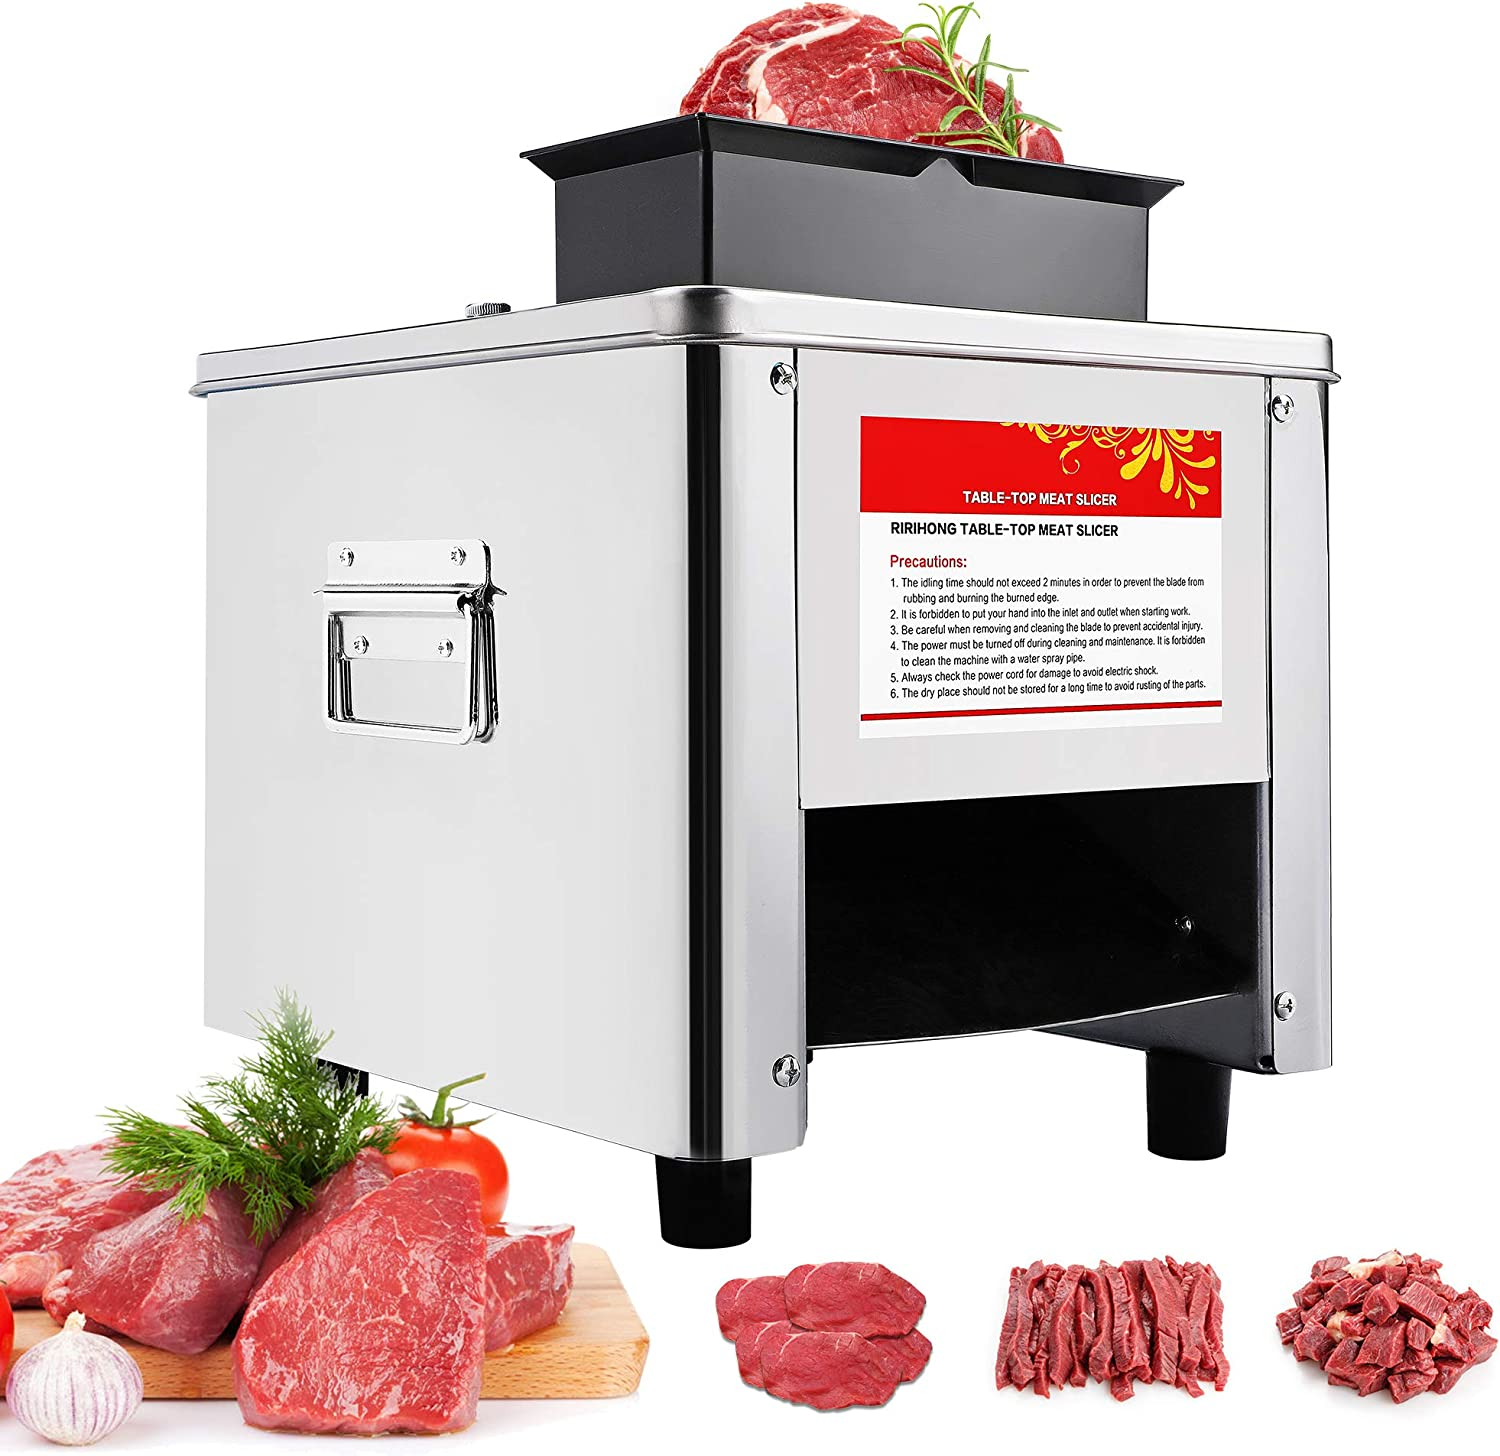 Mxmoonant 3.5mm+5mm Electric Meat Cutter Cutting Machine Slicer Cube Shredded Meat 330lb/h 850W 2 Feed ports Stainless Steel Chicken Fish Beef Chicken Meat Vegetable Slicer (3.5mm+5mm)